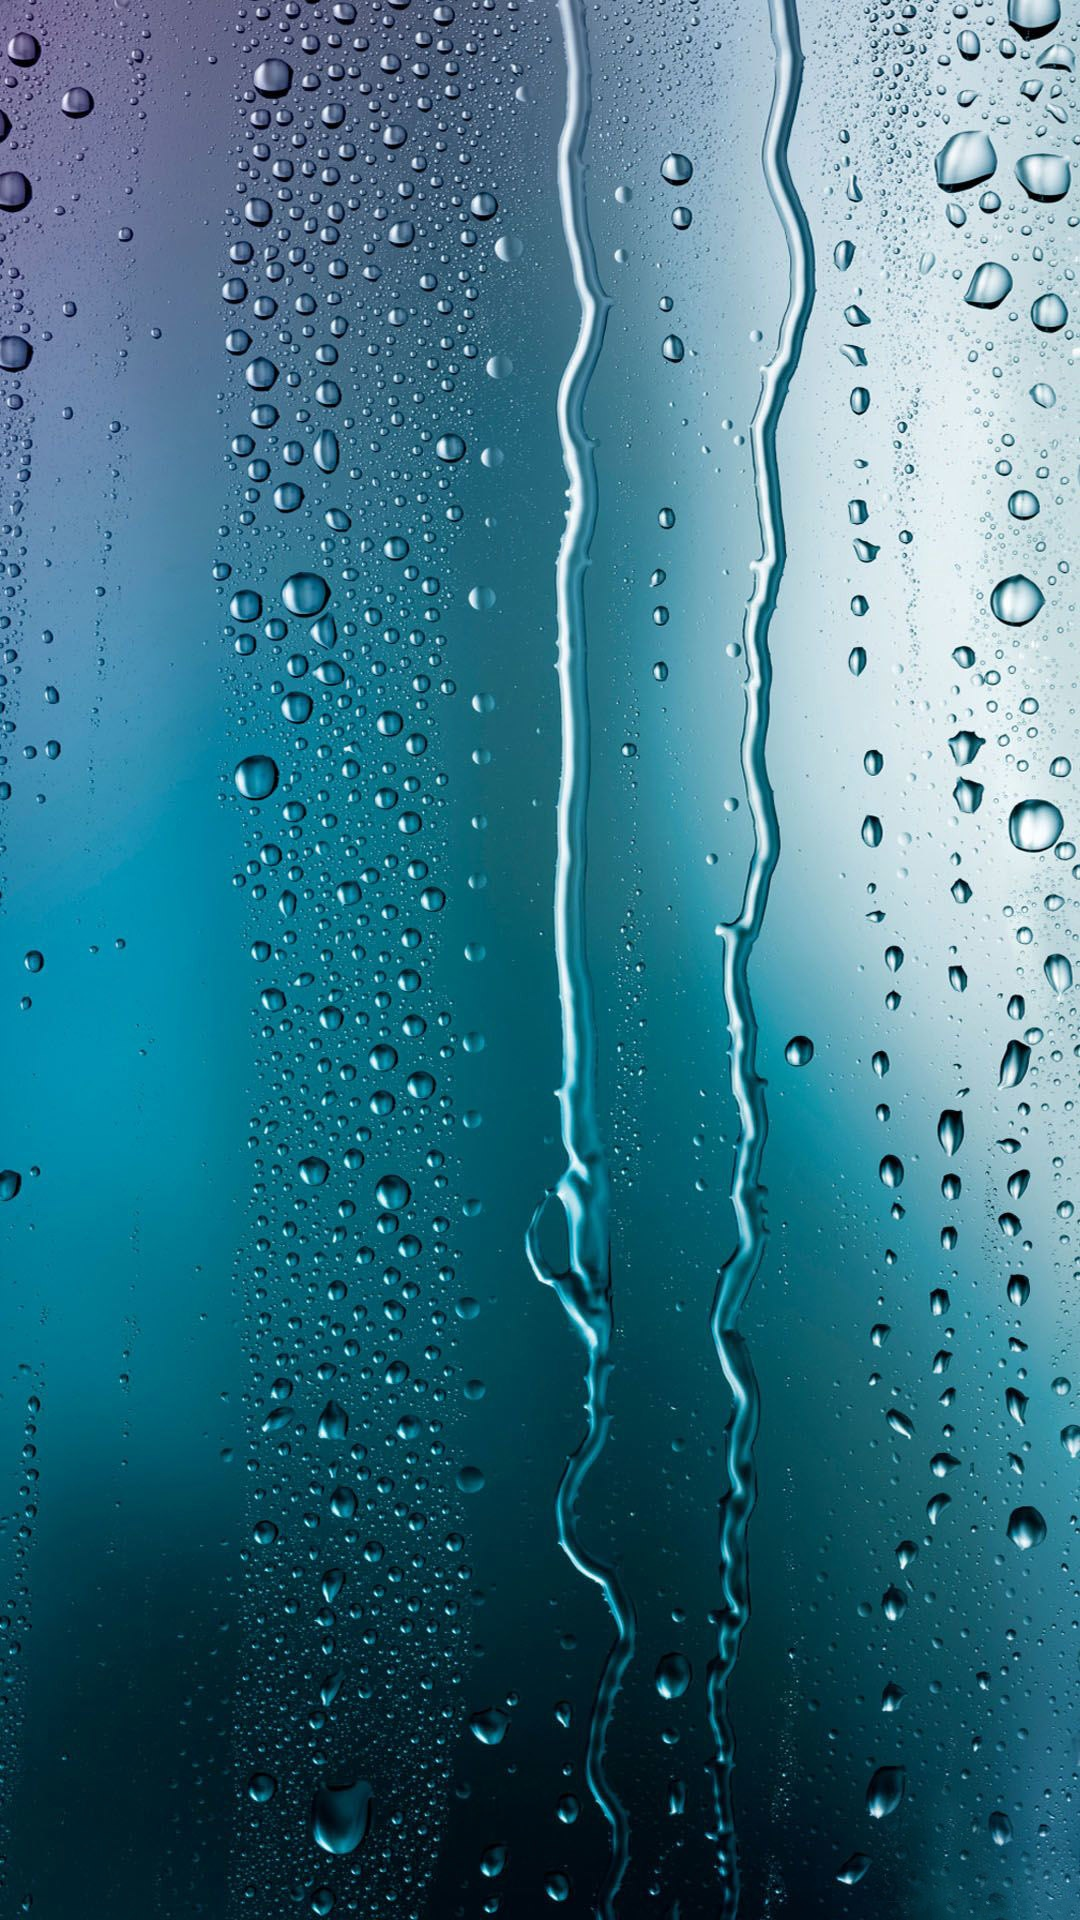 Improper or missing ventilation at bathrooms, kitchens and laundry rooms, can add gallons of moisture into your homes atmosphere and create conditions conducive to mold growth.